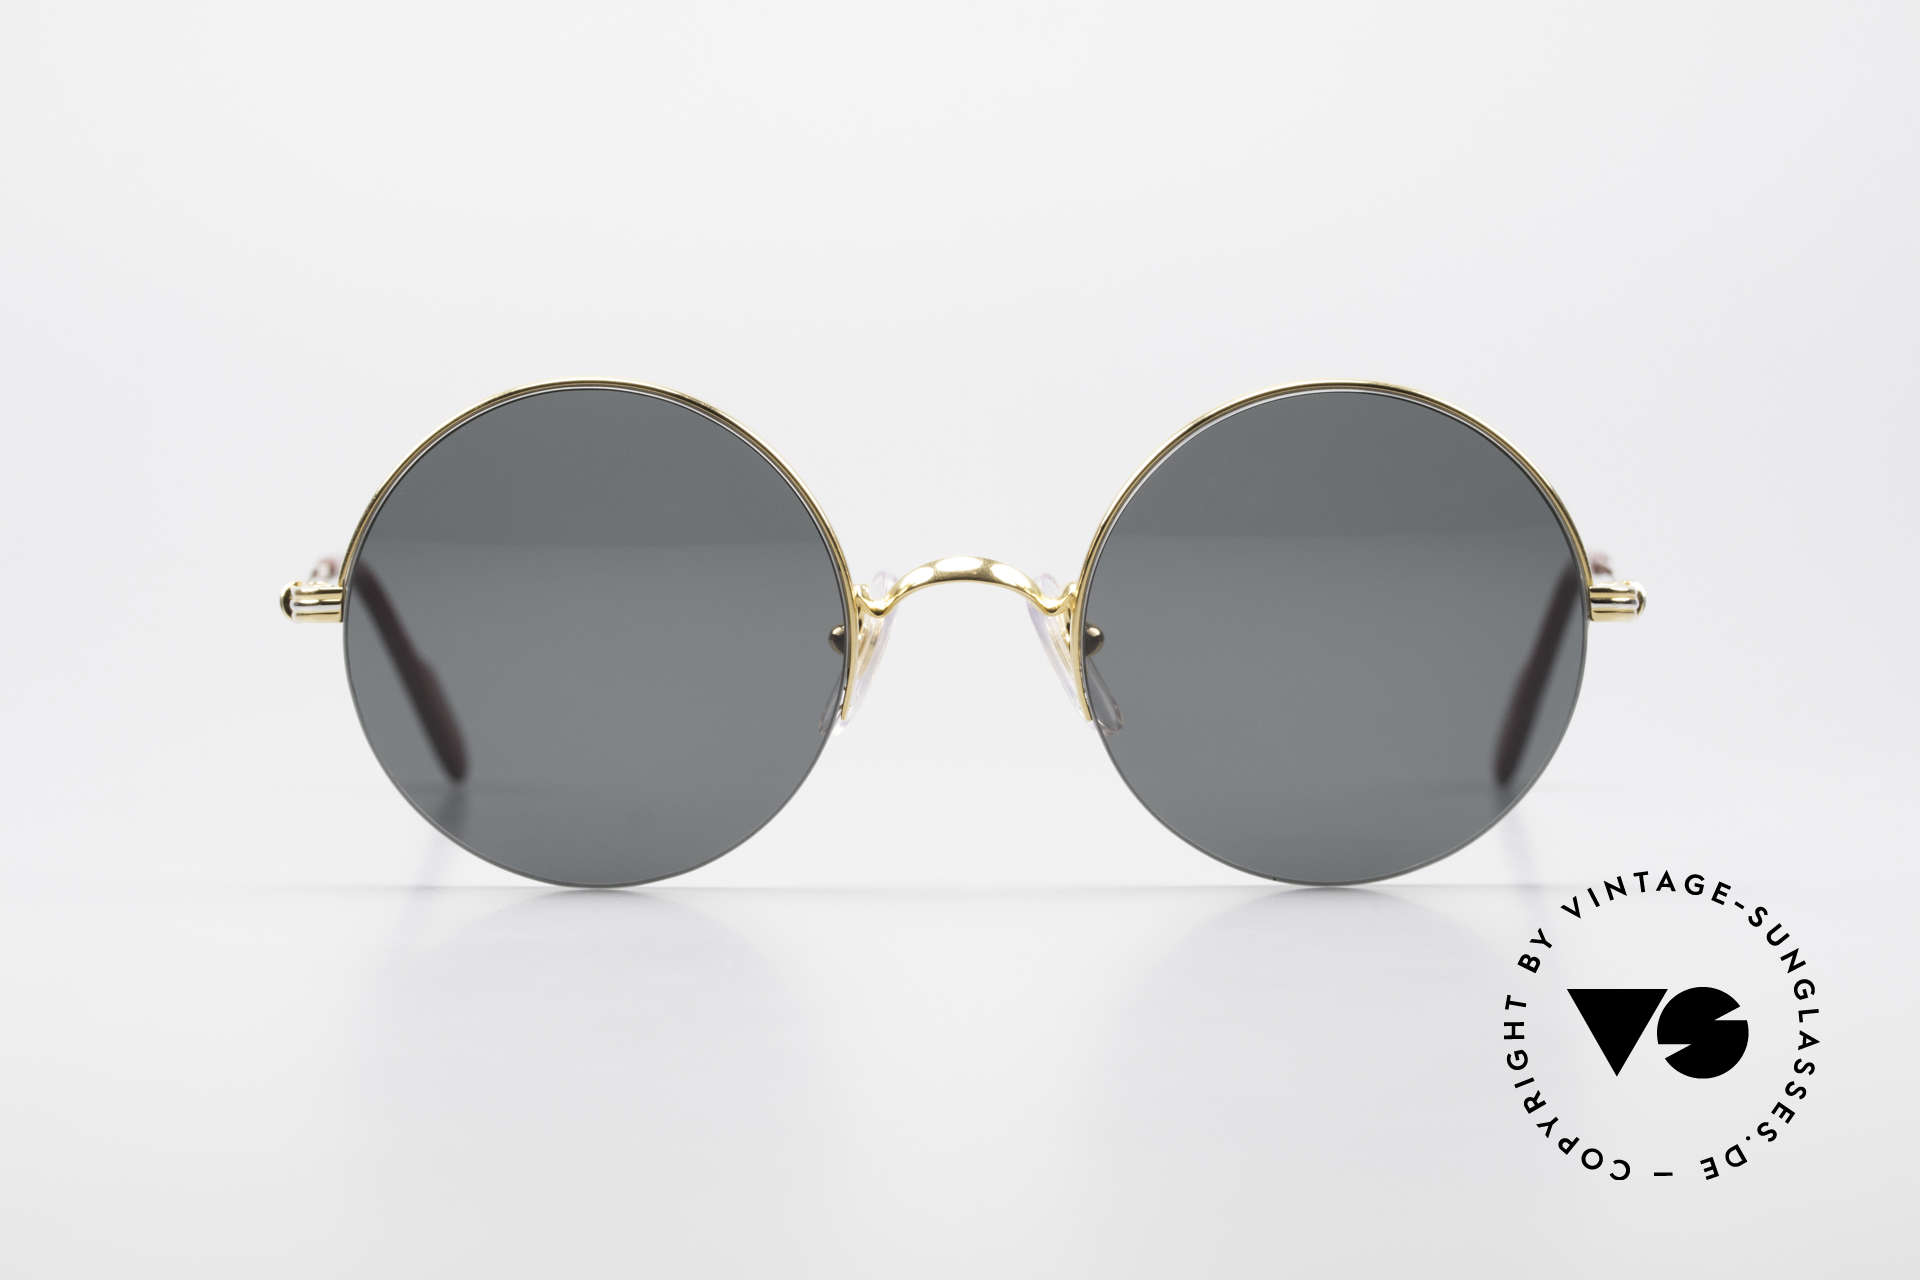 Cartier Mayfair Luxury Round Sunglasses 90's, SMALL round sunglasses in S size 45°20, 135, Made for Men and Women